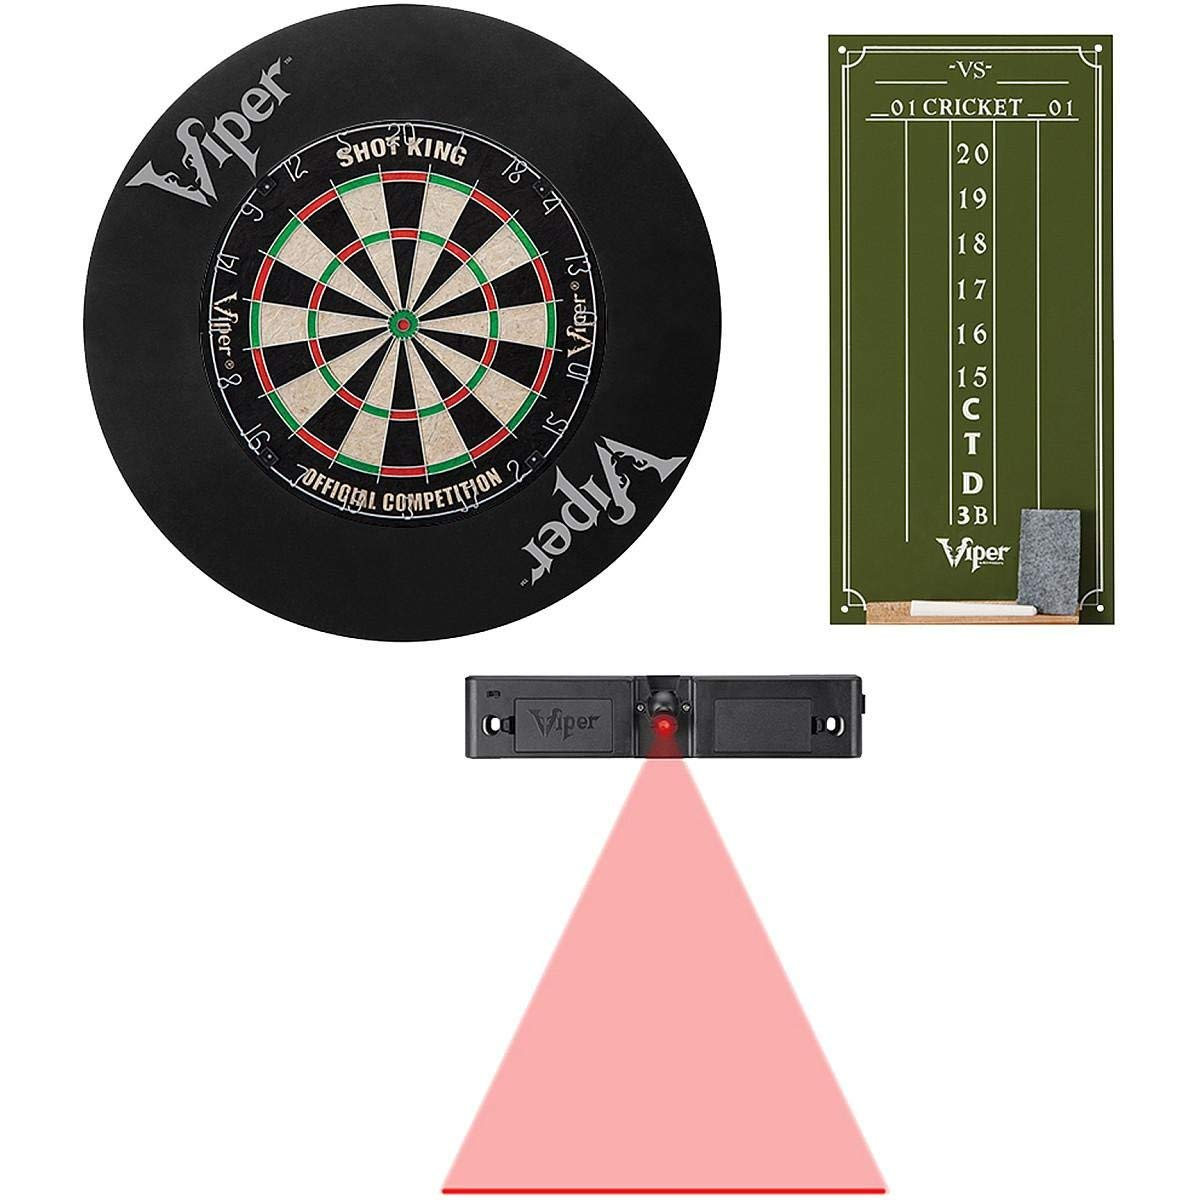 Viper Shot King SISAL Dartboard, Cricket Small Chalk Scoreboard, Defender Backboard